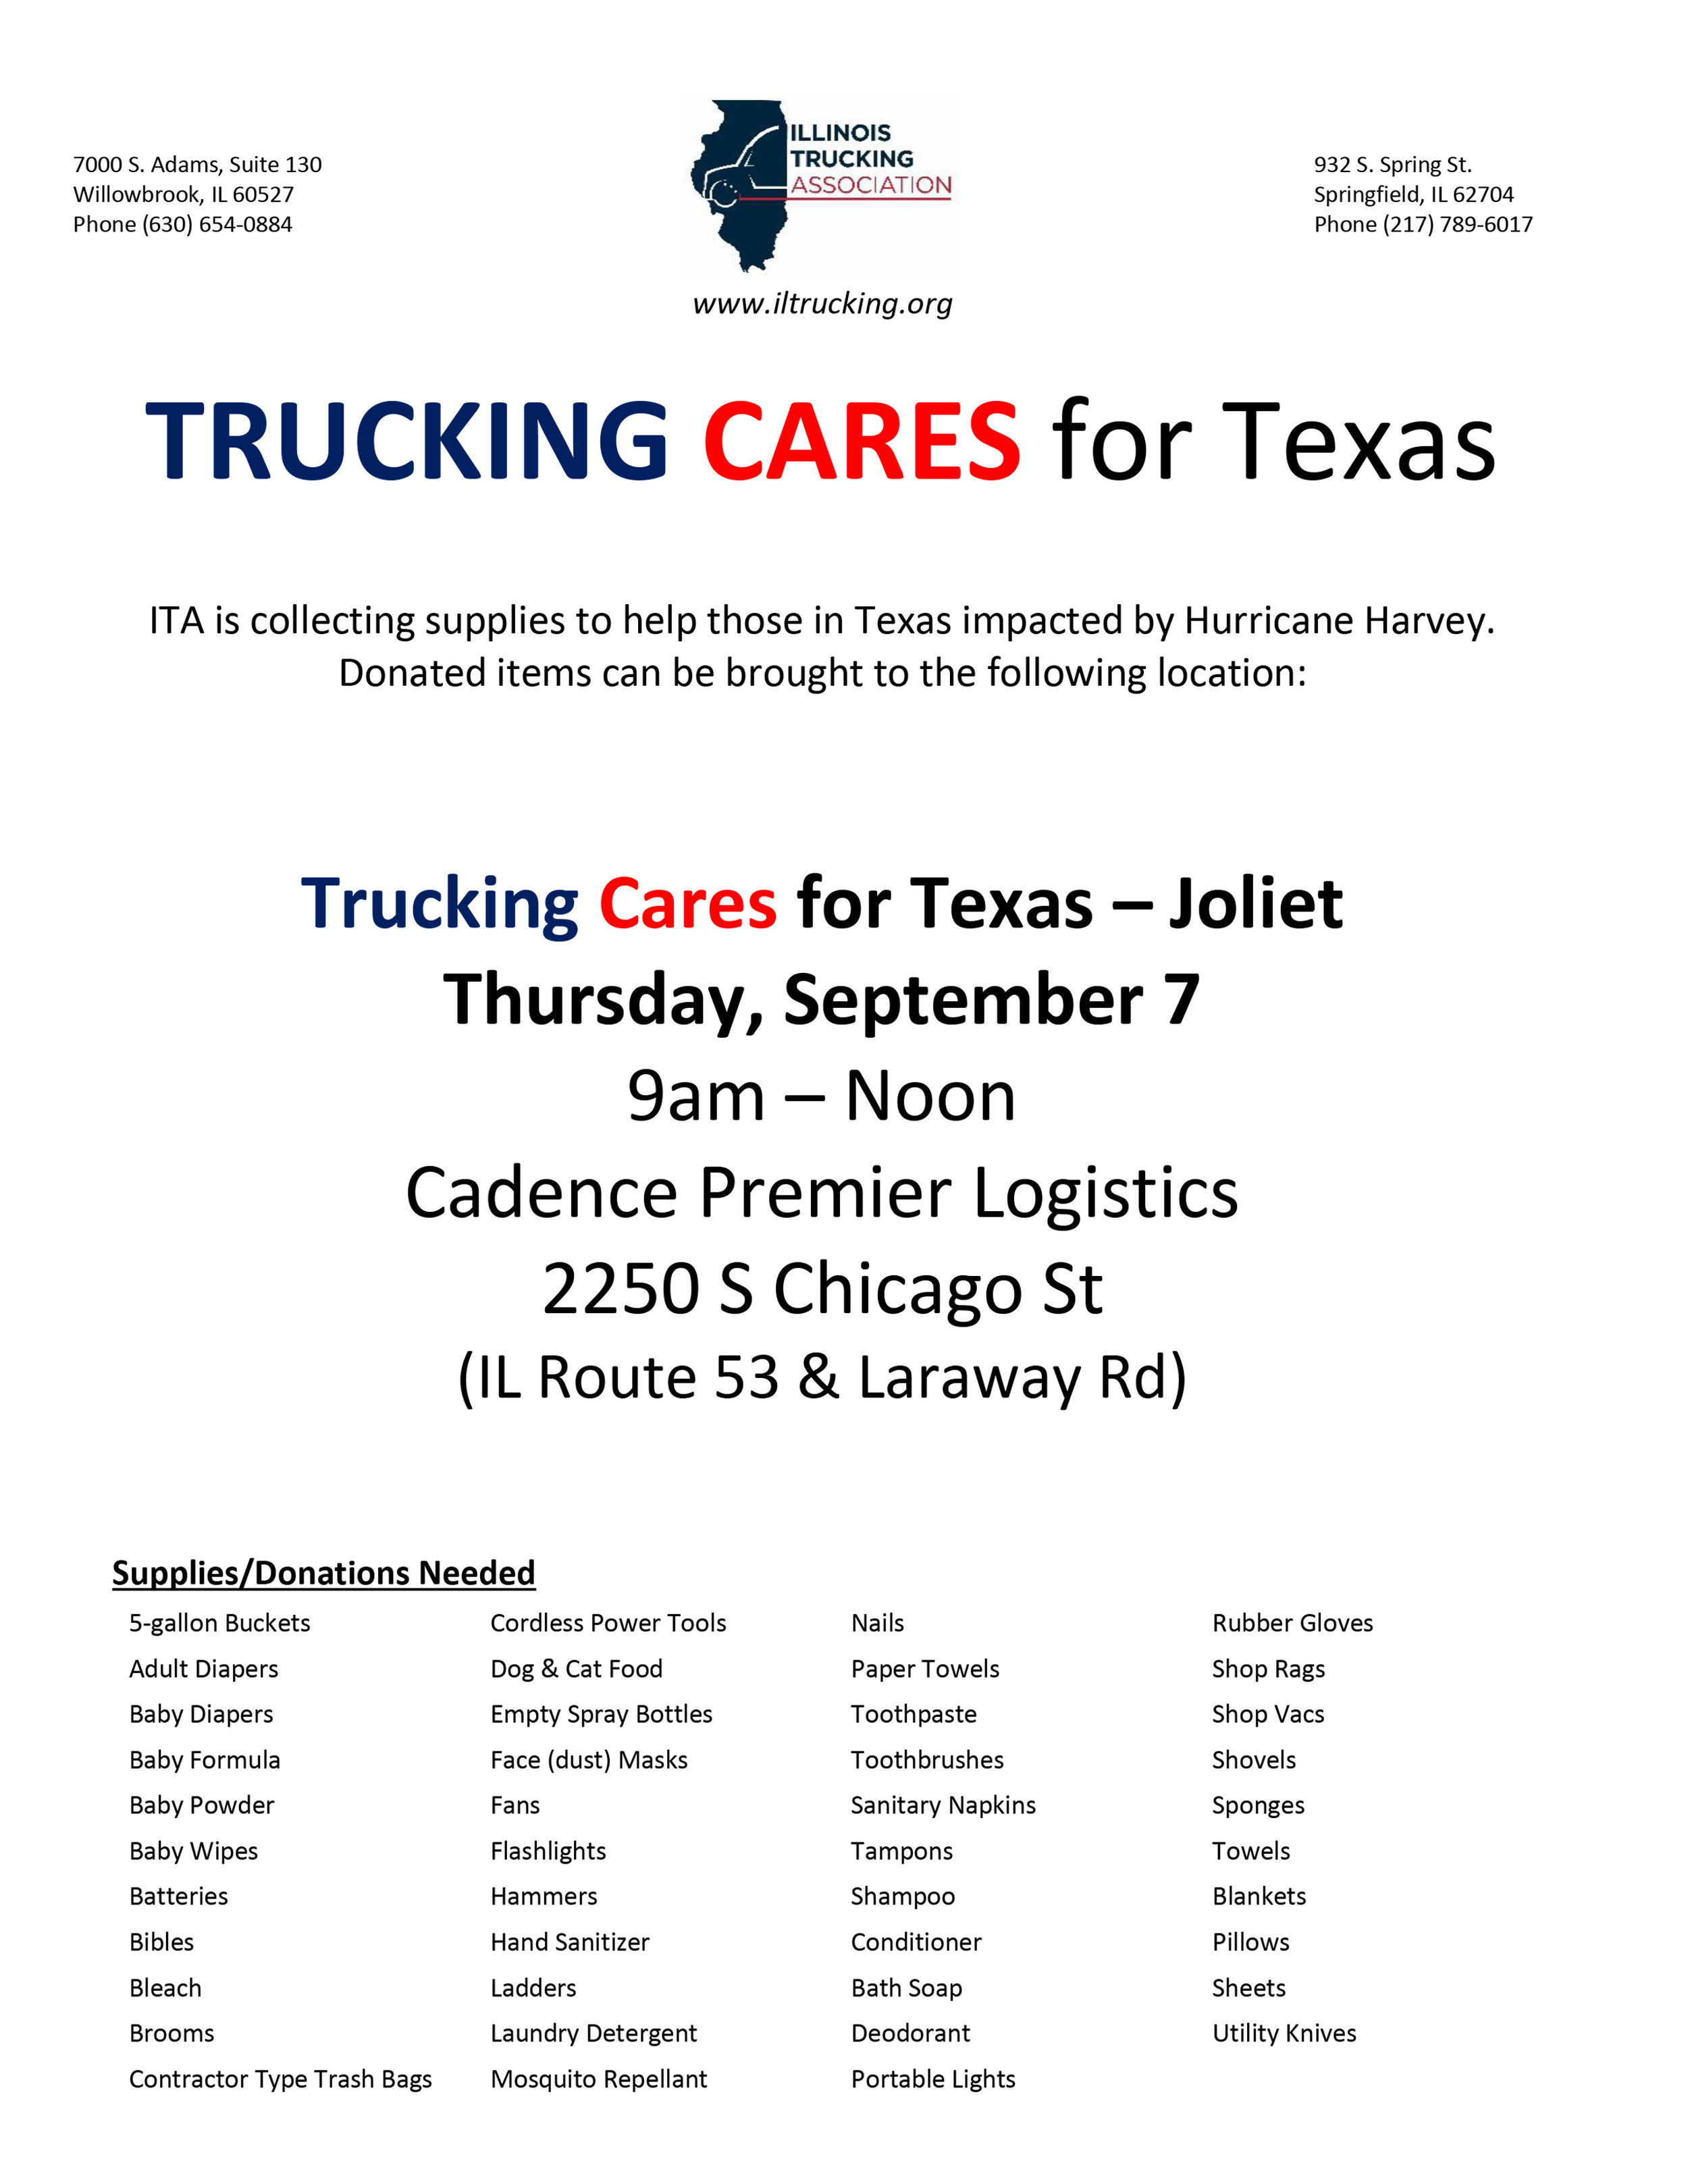 Trucking Cares for Texas Poster - Joliet.jpg